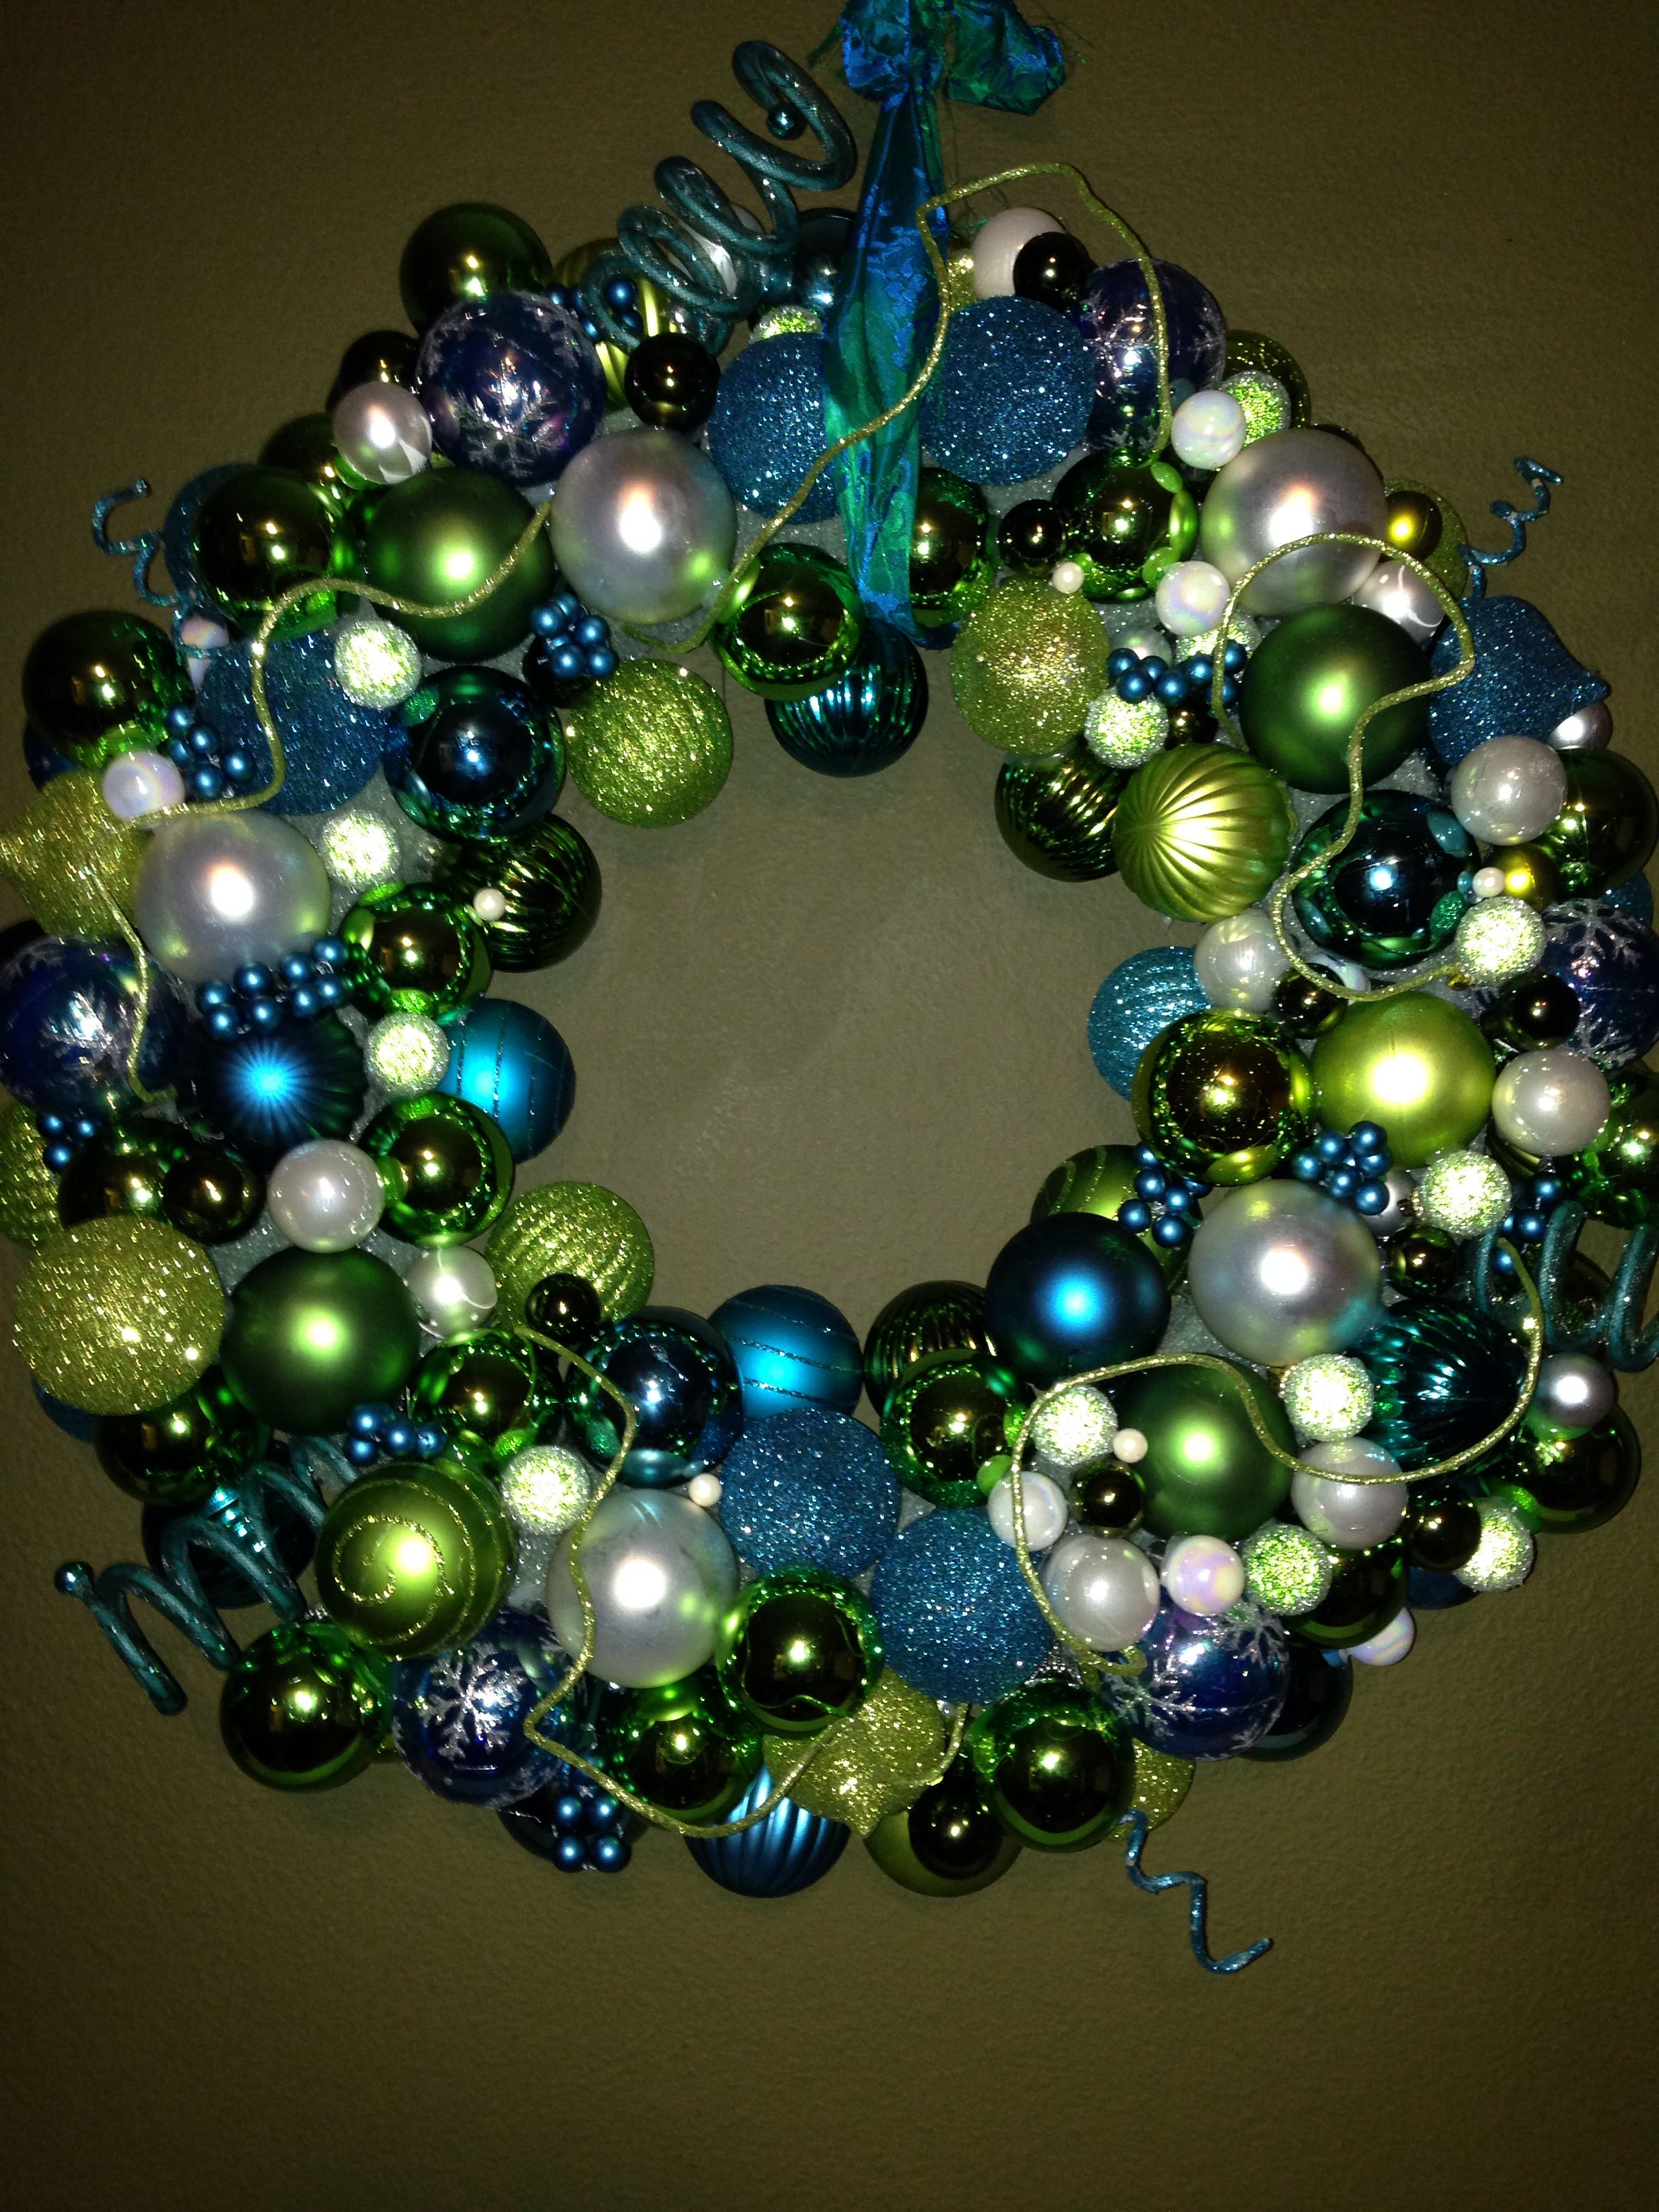 Had To Make A New Wreath With New Colors For A New Chapter